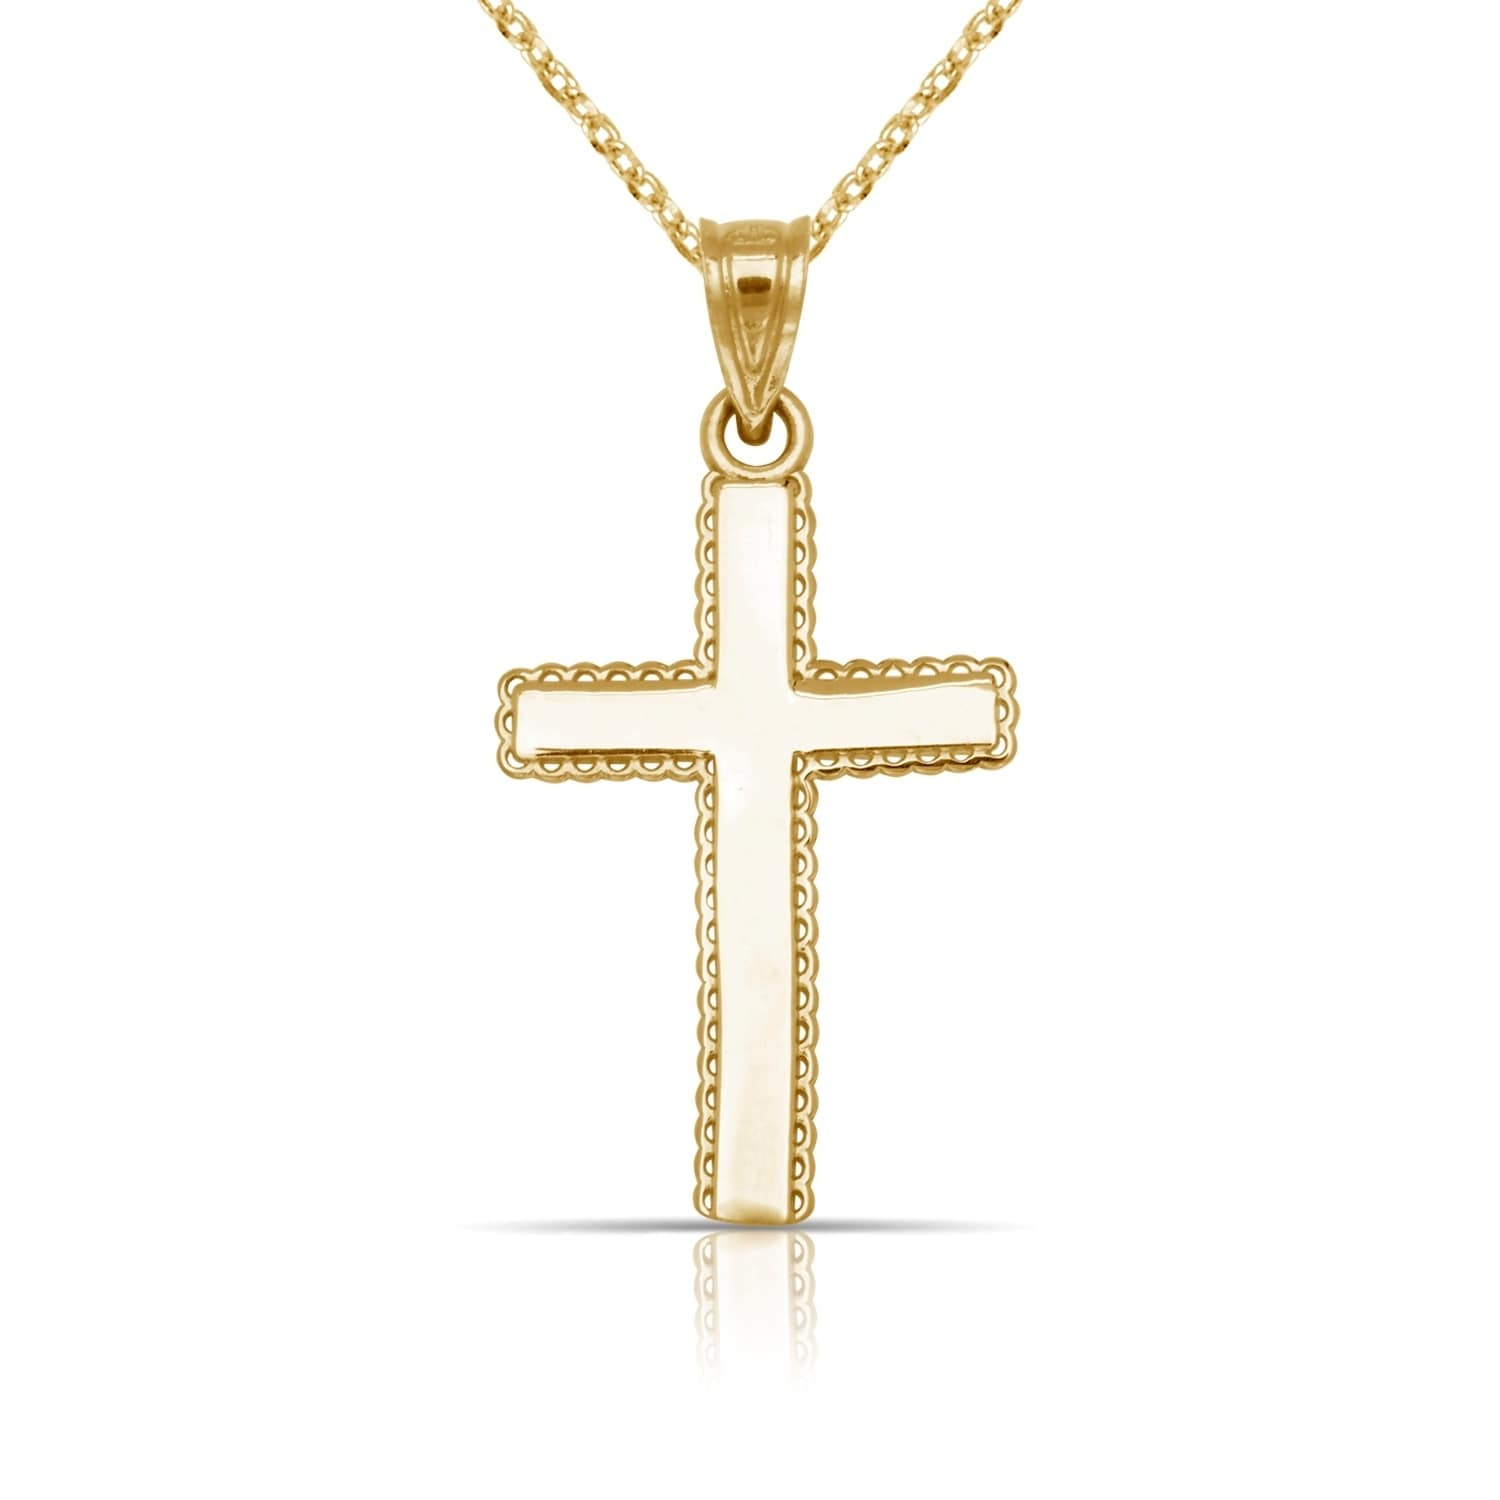 14K Yellow /& White Gold Polished Beaded Crucifix Pendant